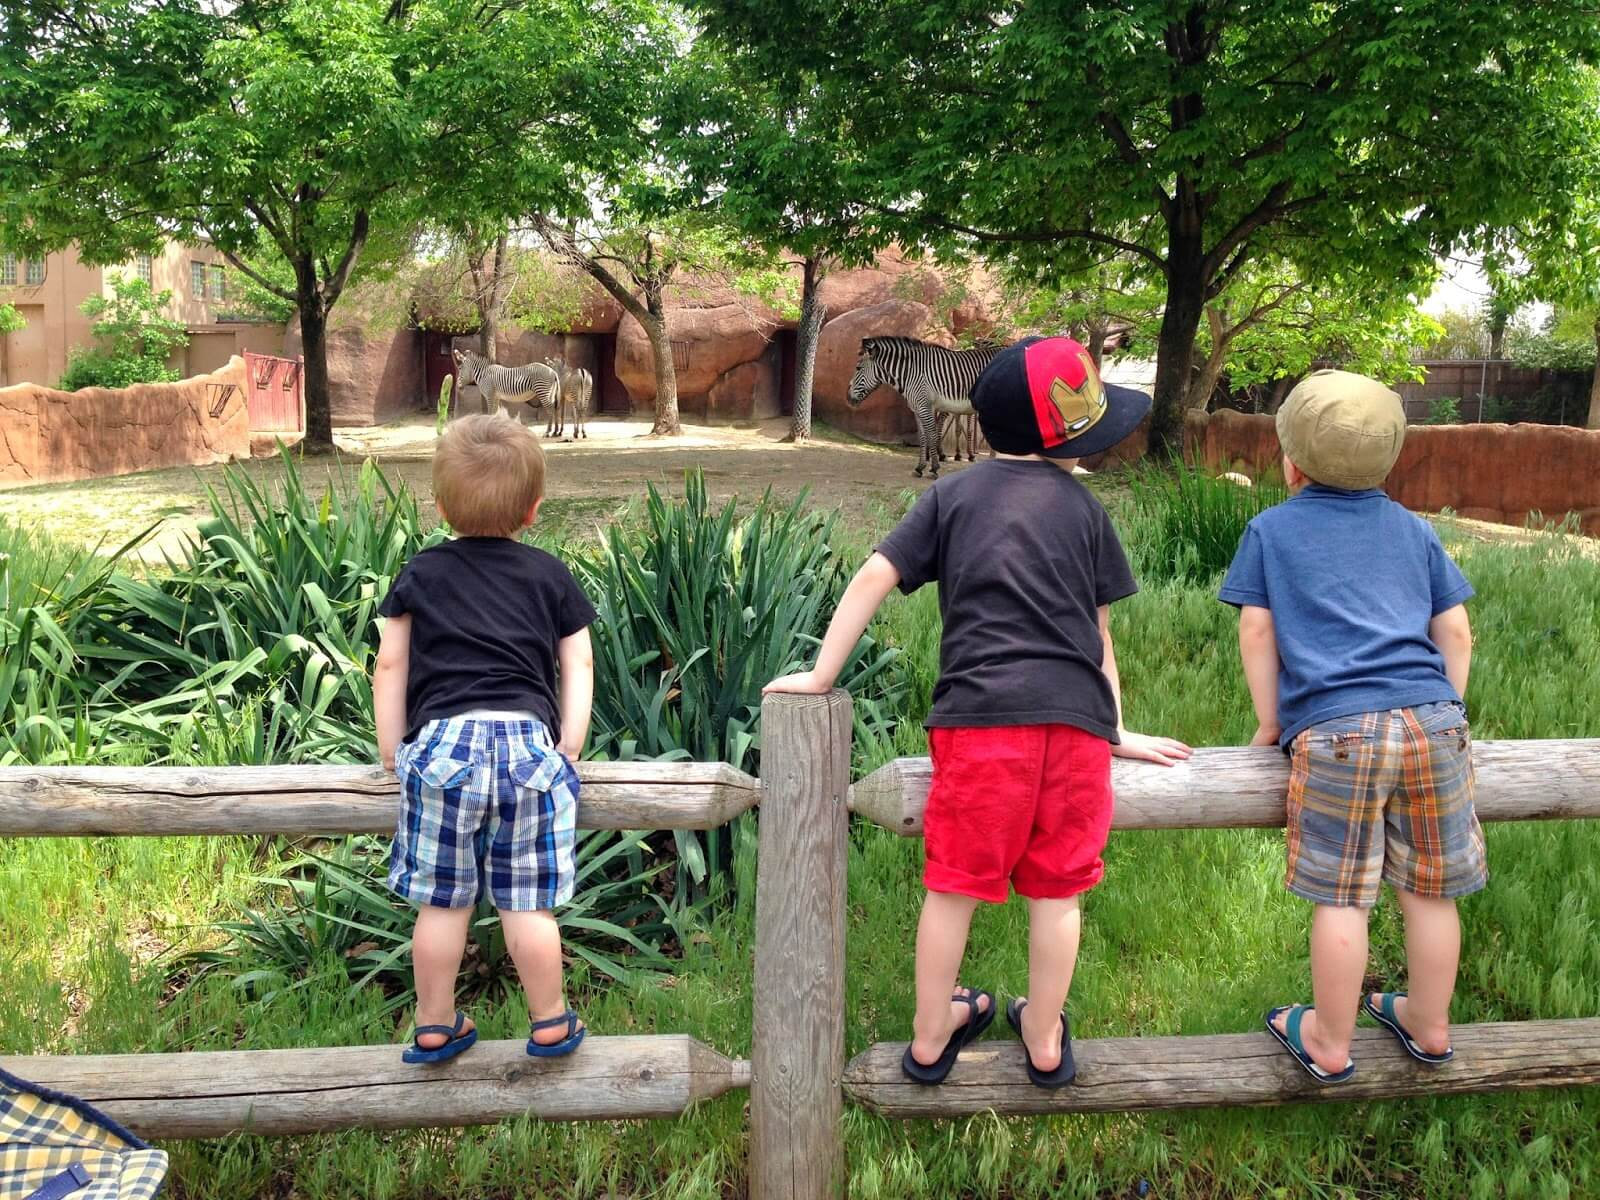 3 boys standing on fence